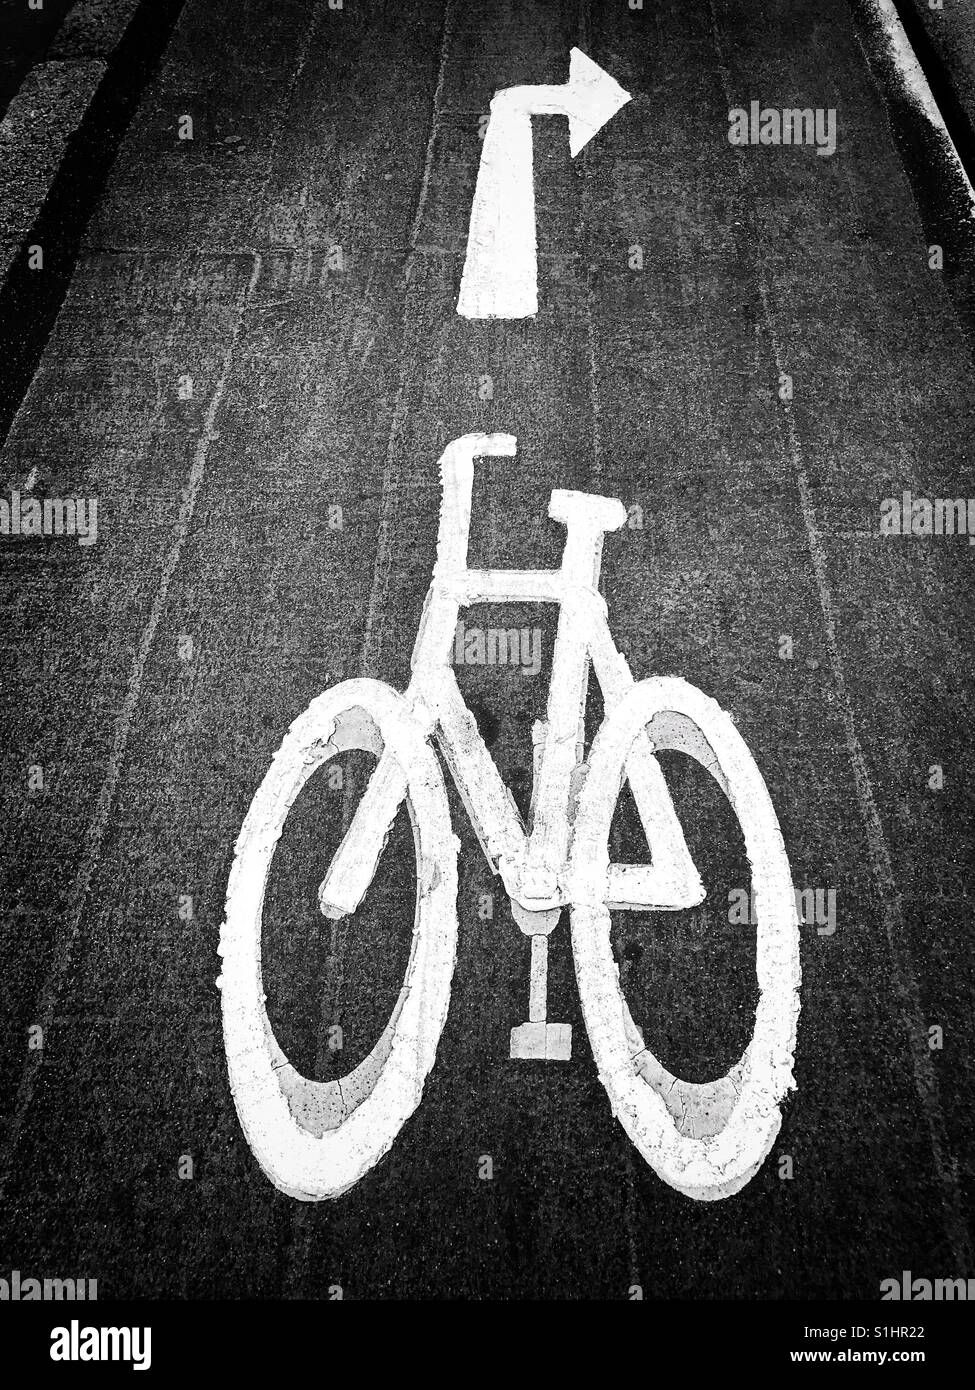 A painted white symbol of a bicycle in an urban area - this is a dedicated cycle lane. The arrow indicates cyclists - Stock Image